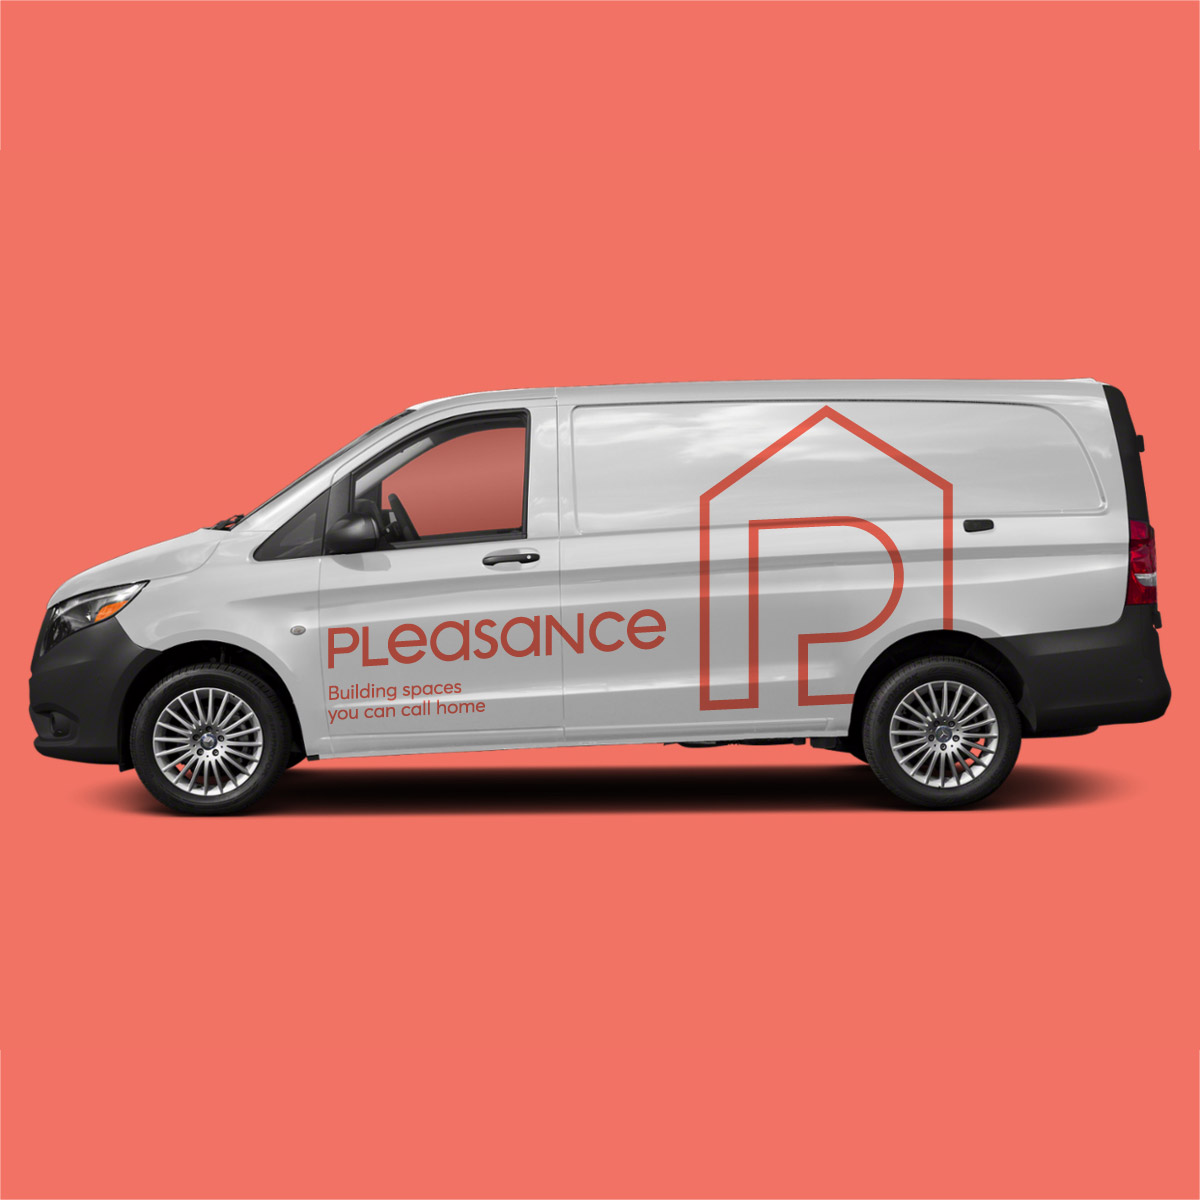 AG Design Agency Pleasance Construction building spaces you can call home